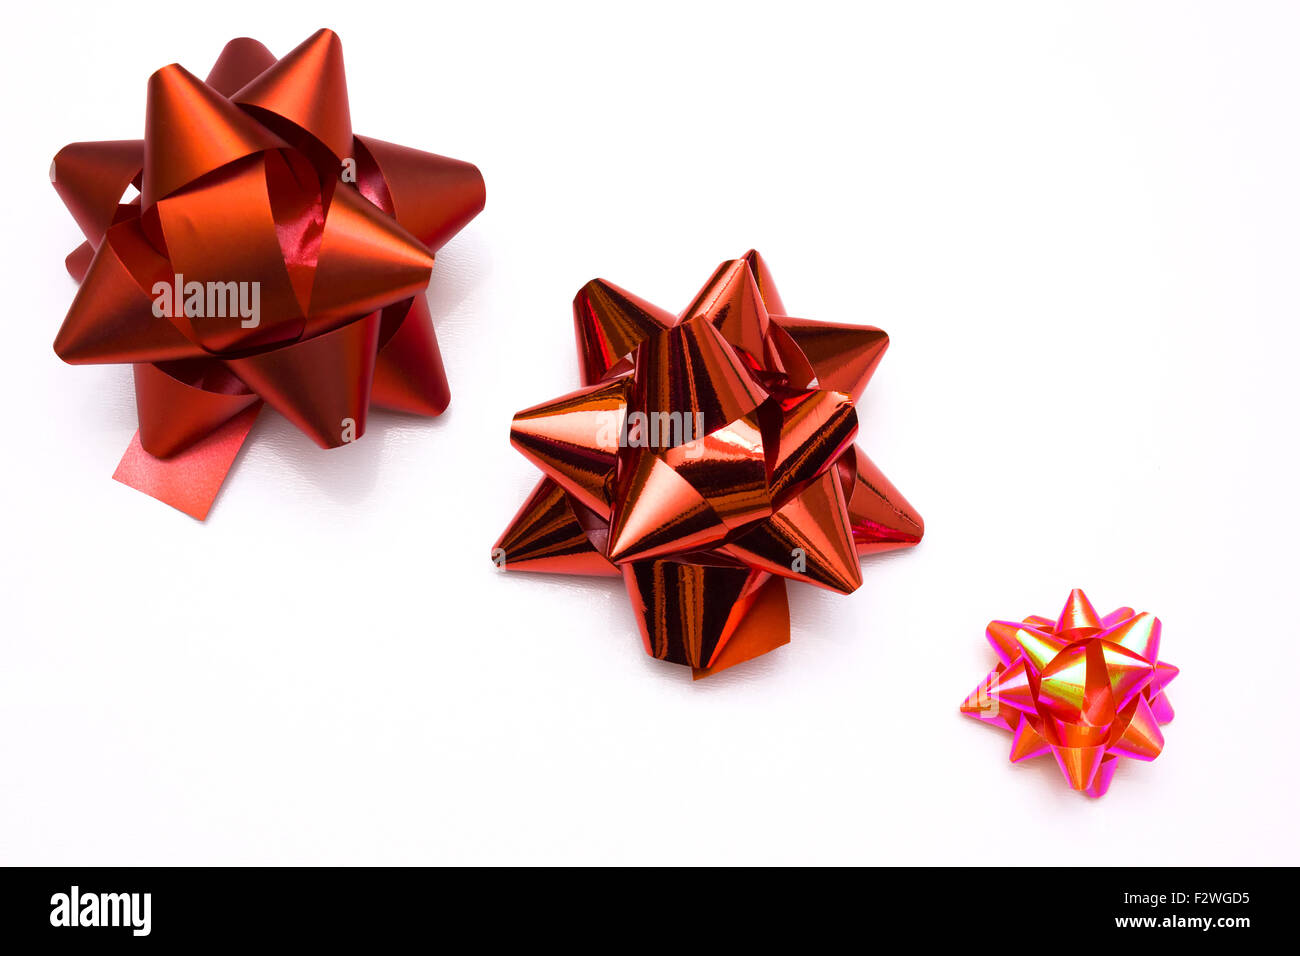 Red bows - Stock Image